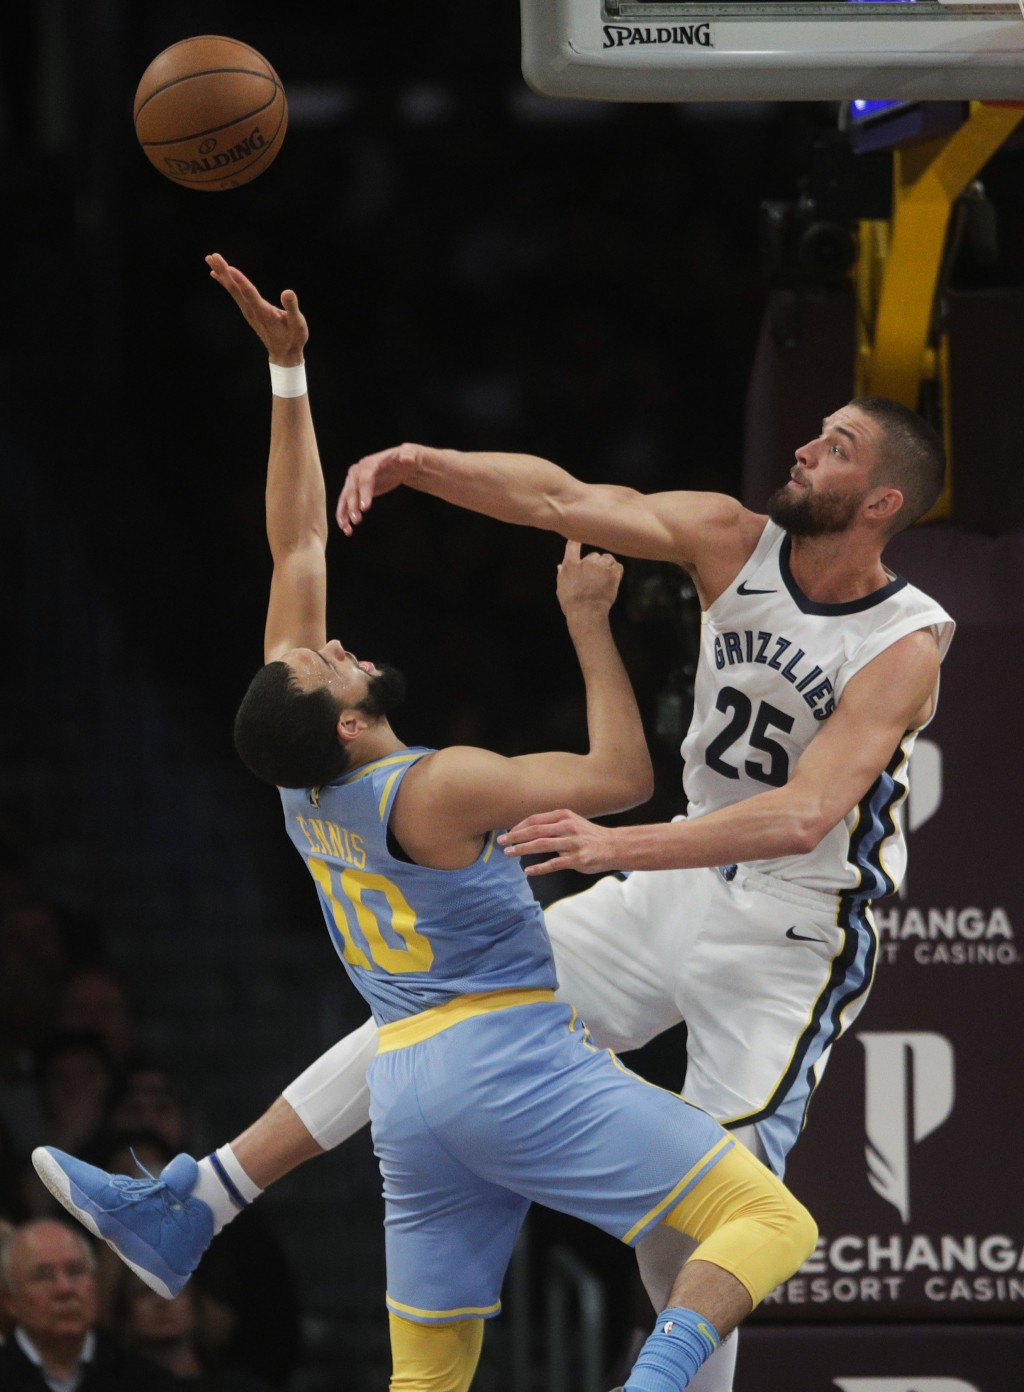 Los Angeles Lakers' Tyler Ennis, left, has his shot blocked by Memphis Grizzlies' Chandler Parsons during the first half of an NBA basketball game, We...